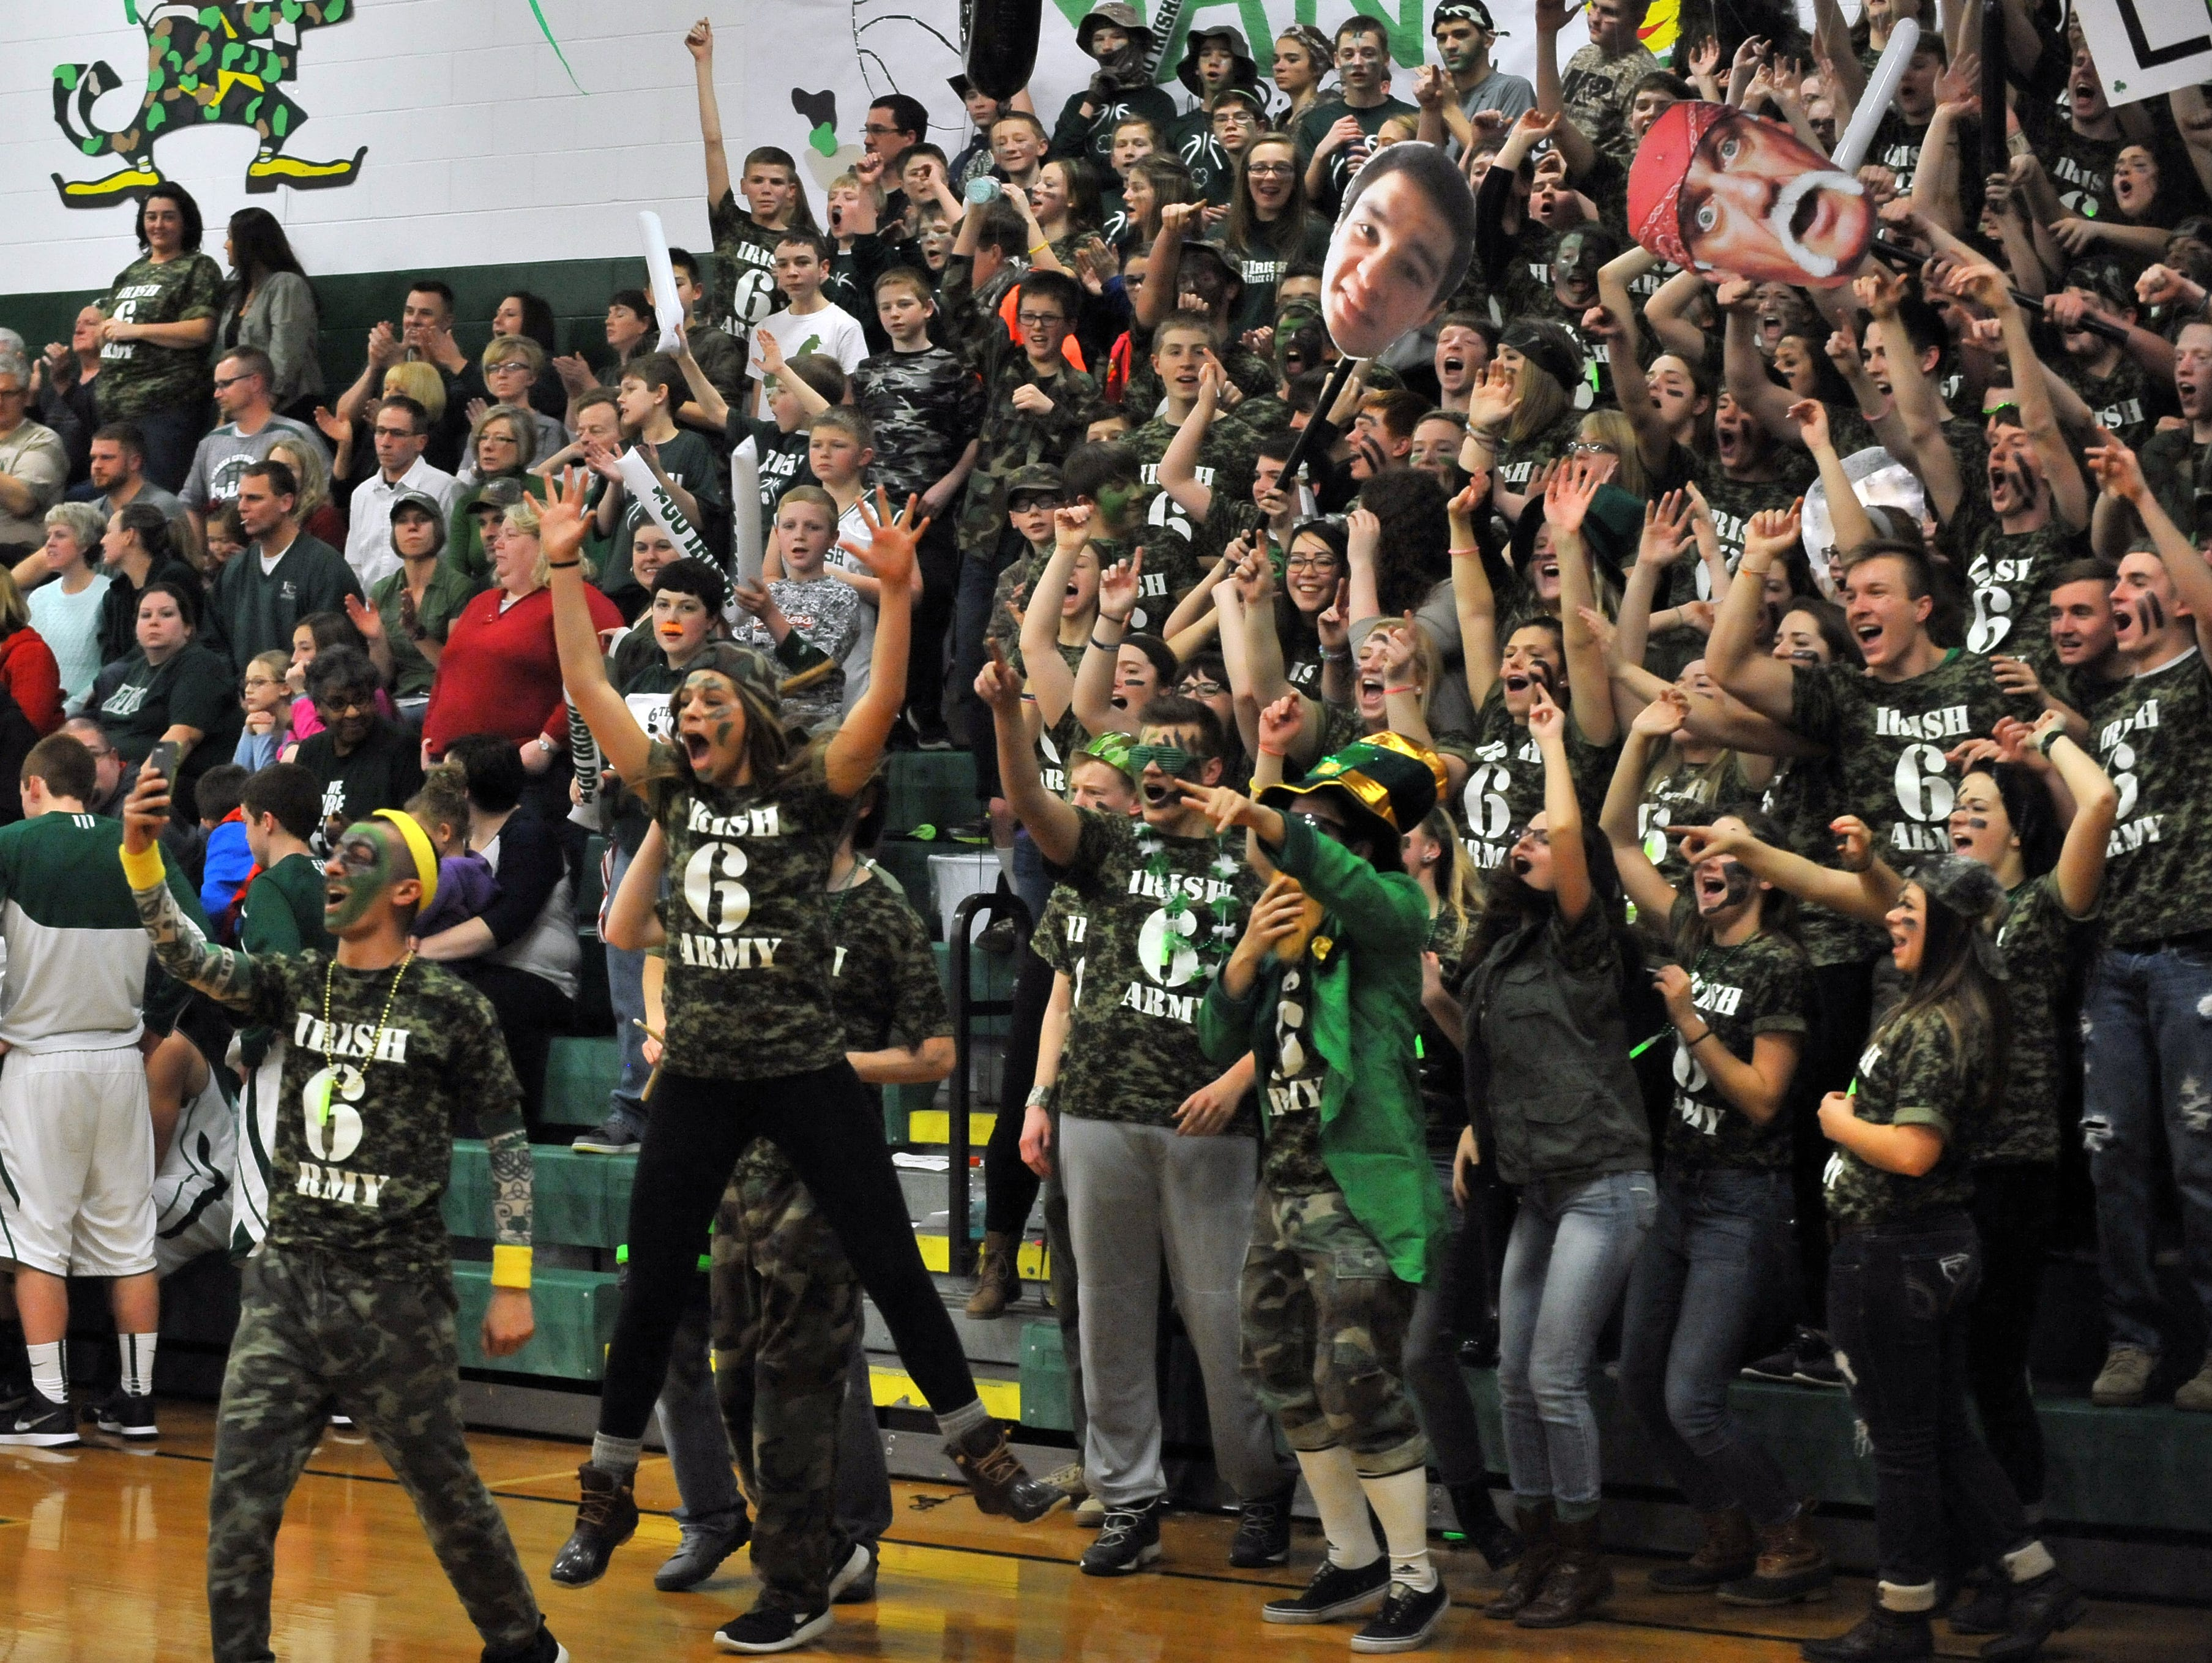 The Fisher Catholic student section won the first Battle of the Fans competition.